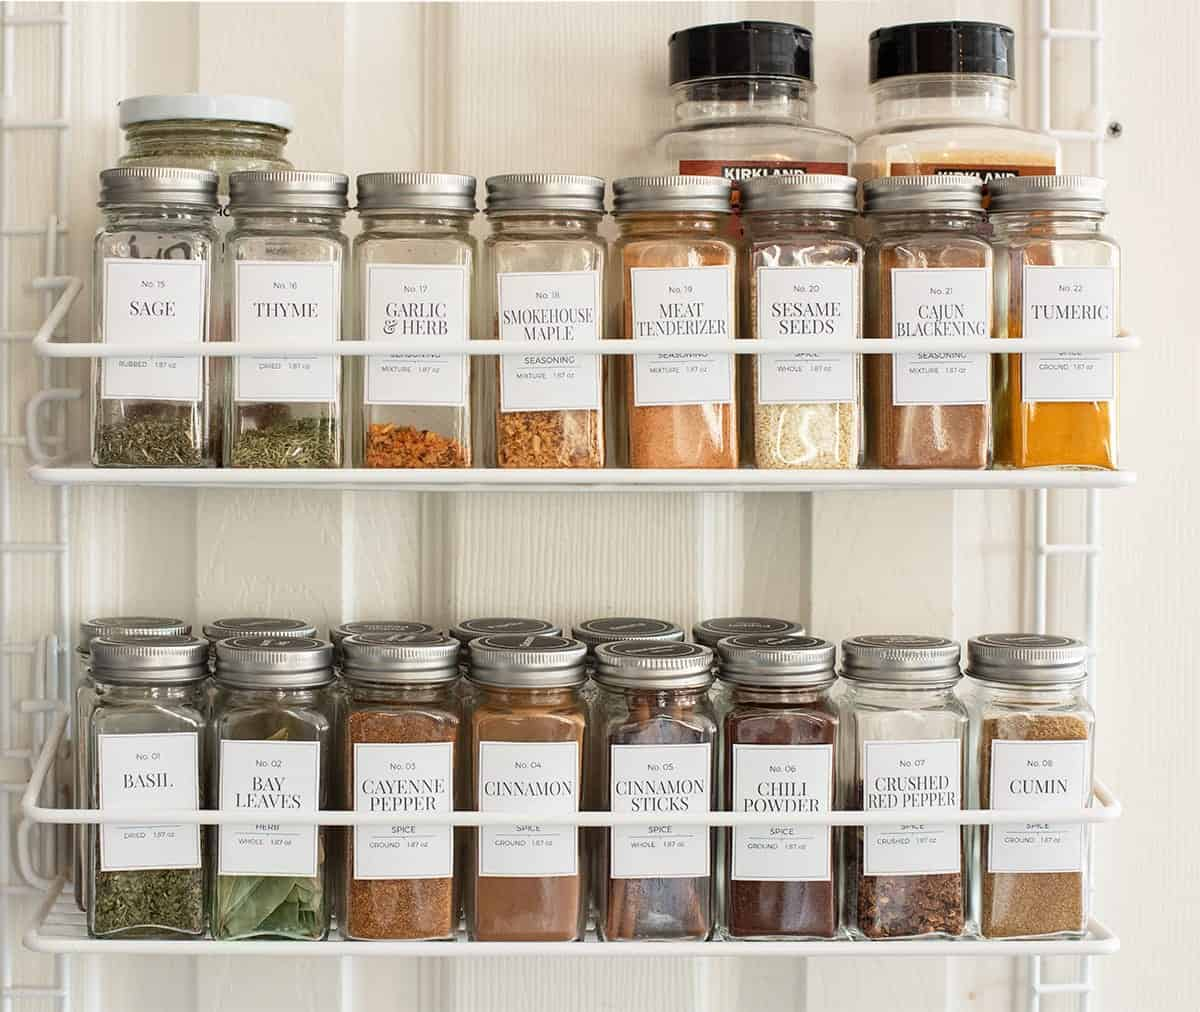 Spice rack organizer arranged with clear glass spice jars labeled with contents.